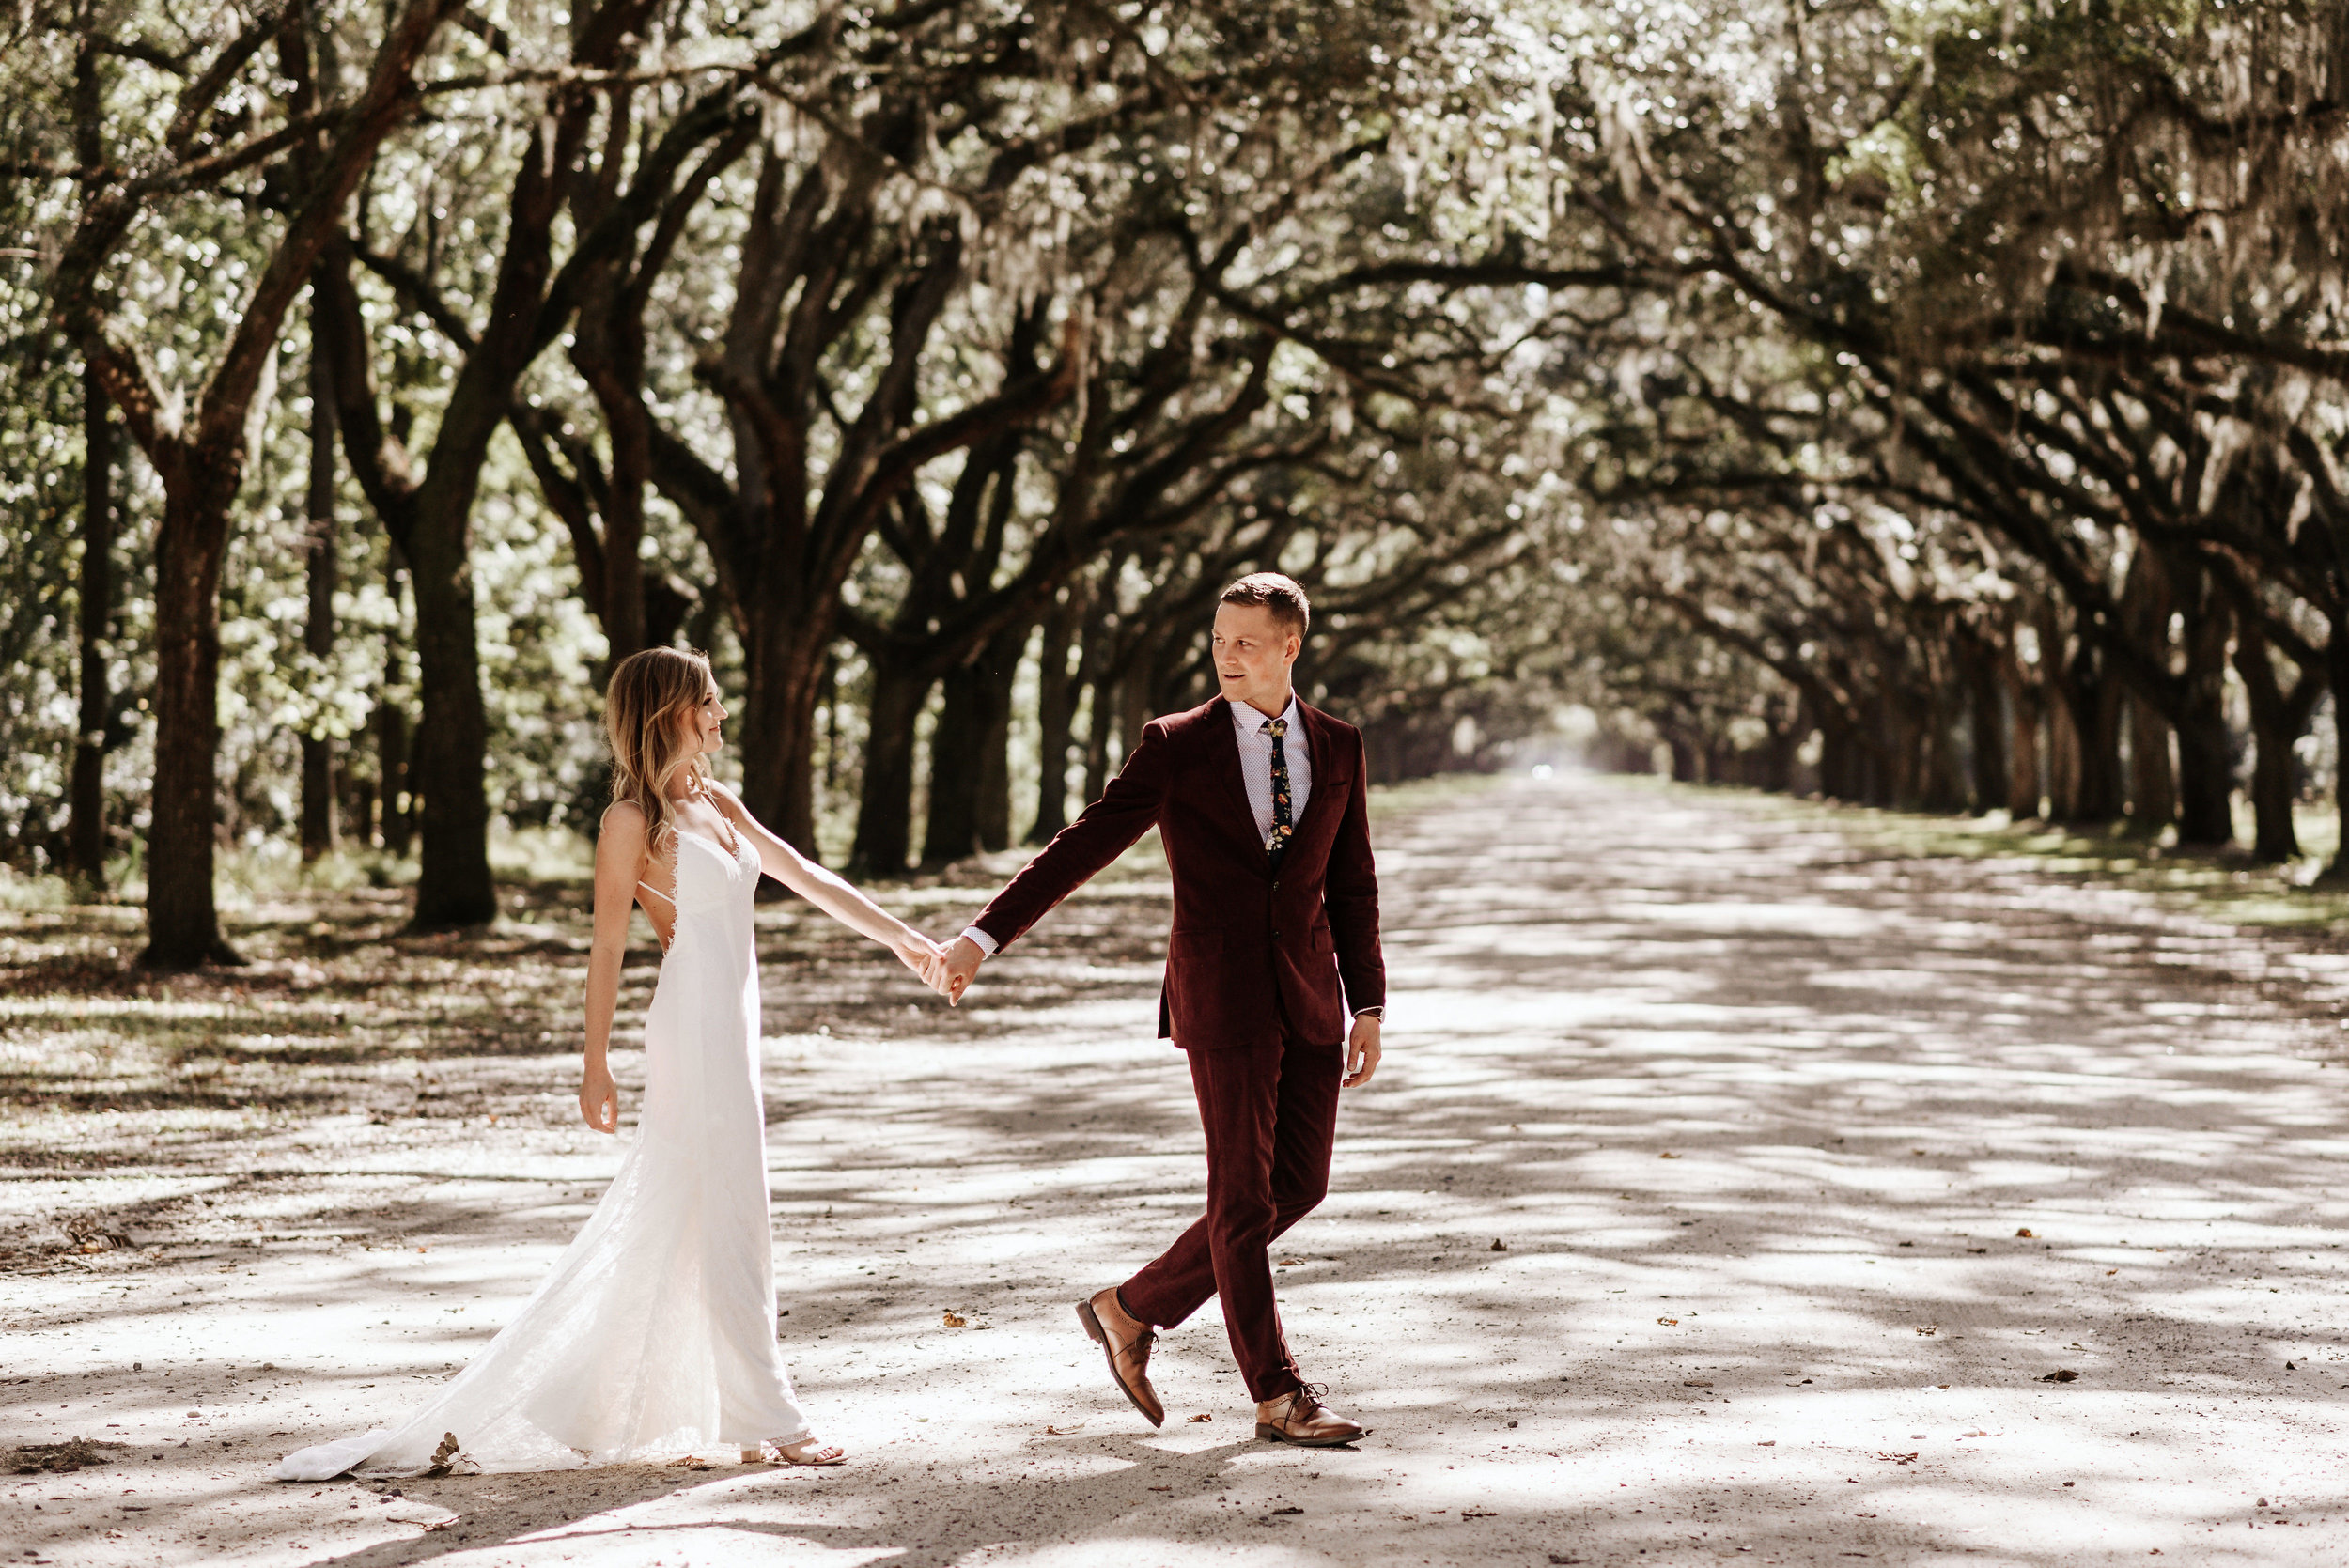 Kourtney_Sean_Savannah_Georgia_Wedding_Wormsloe_Histroic_Site_Coastal_Georgia_Botanical_Gardens_Photography_by_V_6873.jpg